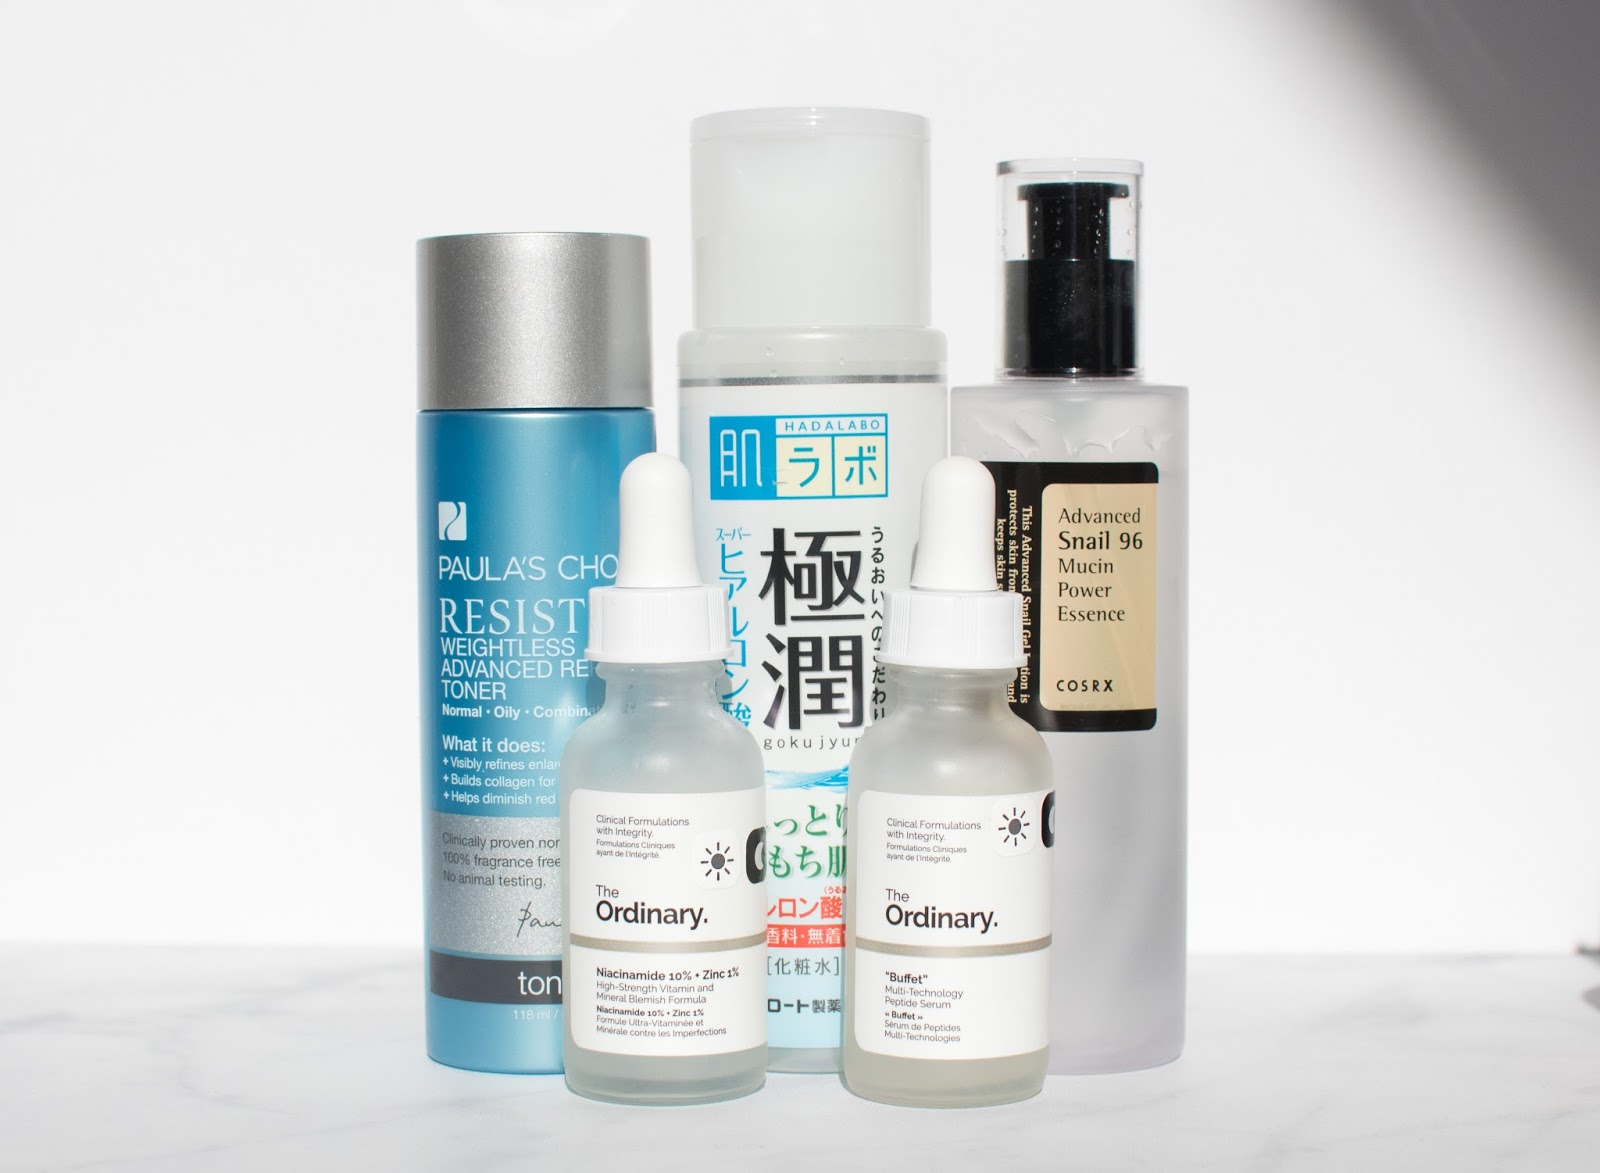 Toner, Lotion, Essence, and Serums